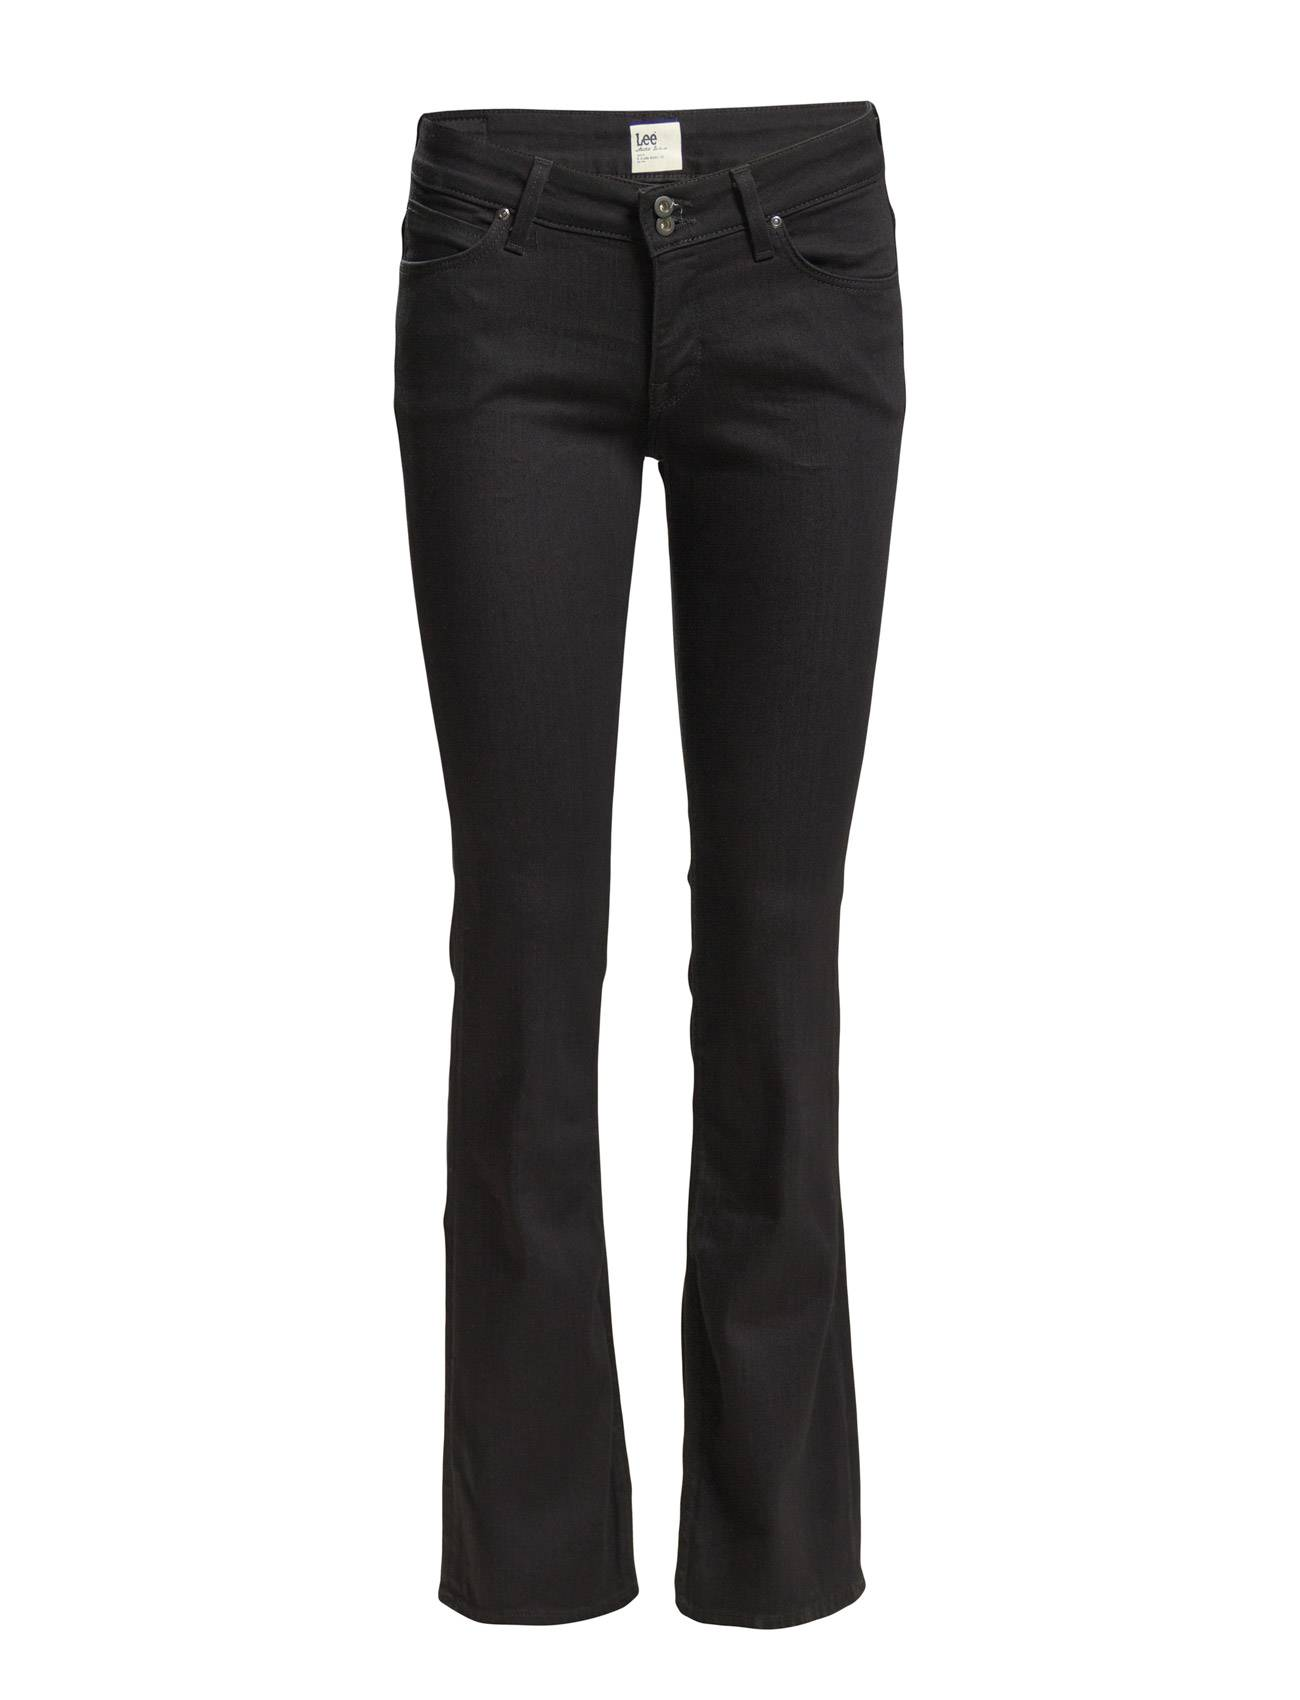 Lee Jeans Joliet Black Rinse